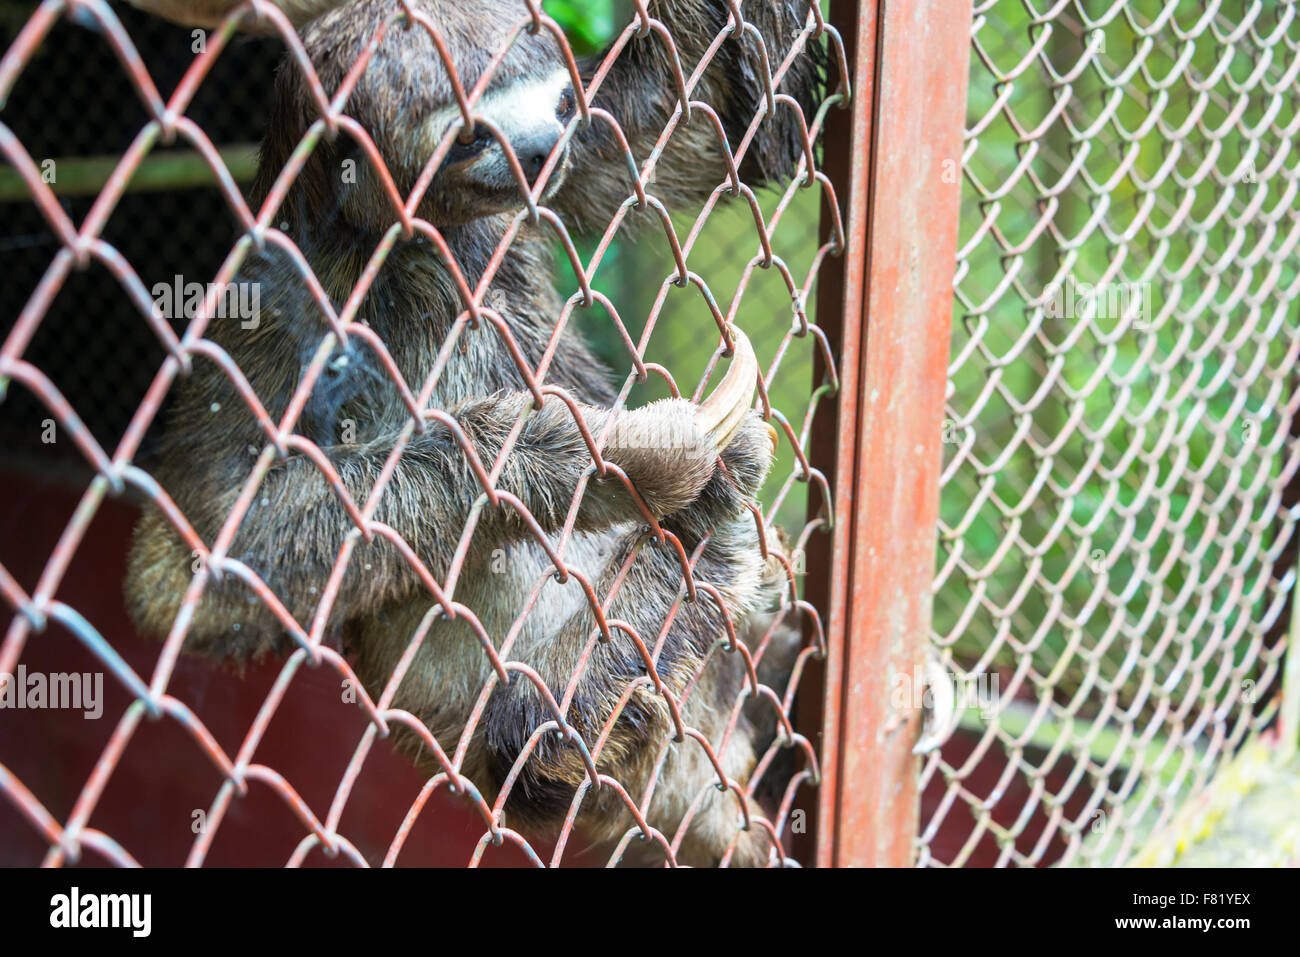 View of a three toed sloth in a cage near Iquitos, Peru - Stock Image